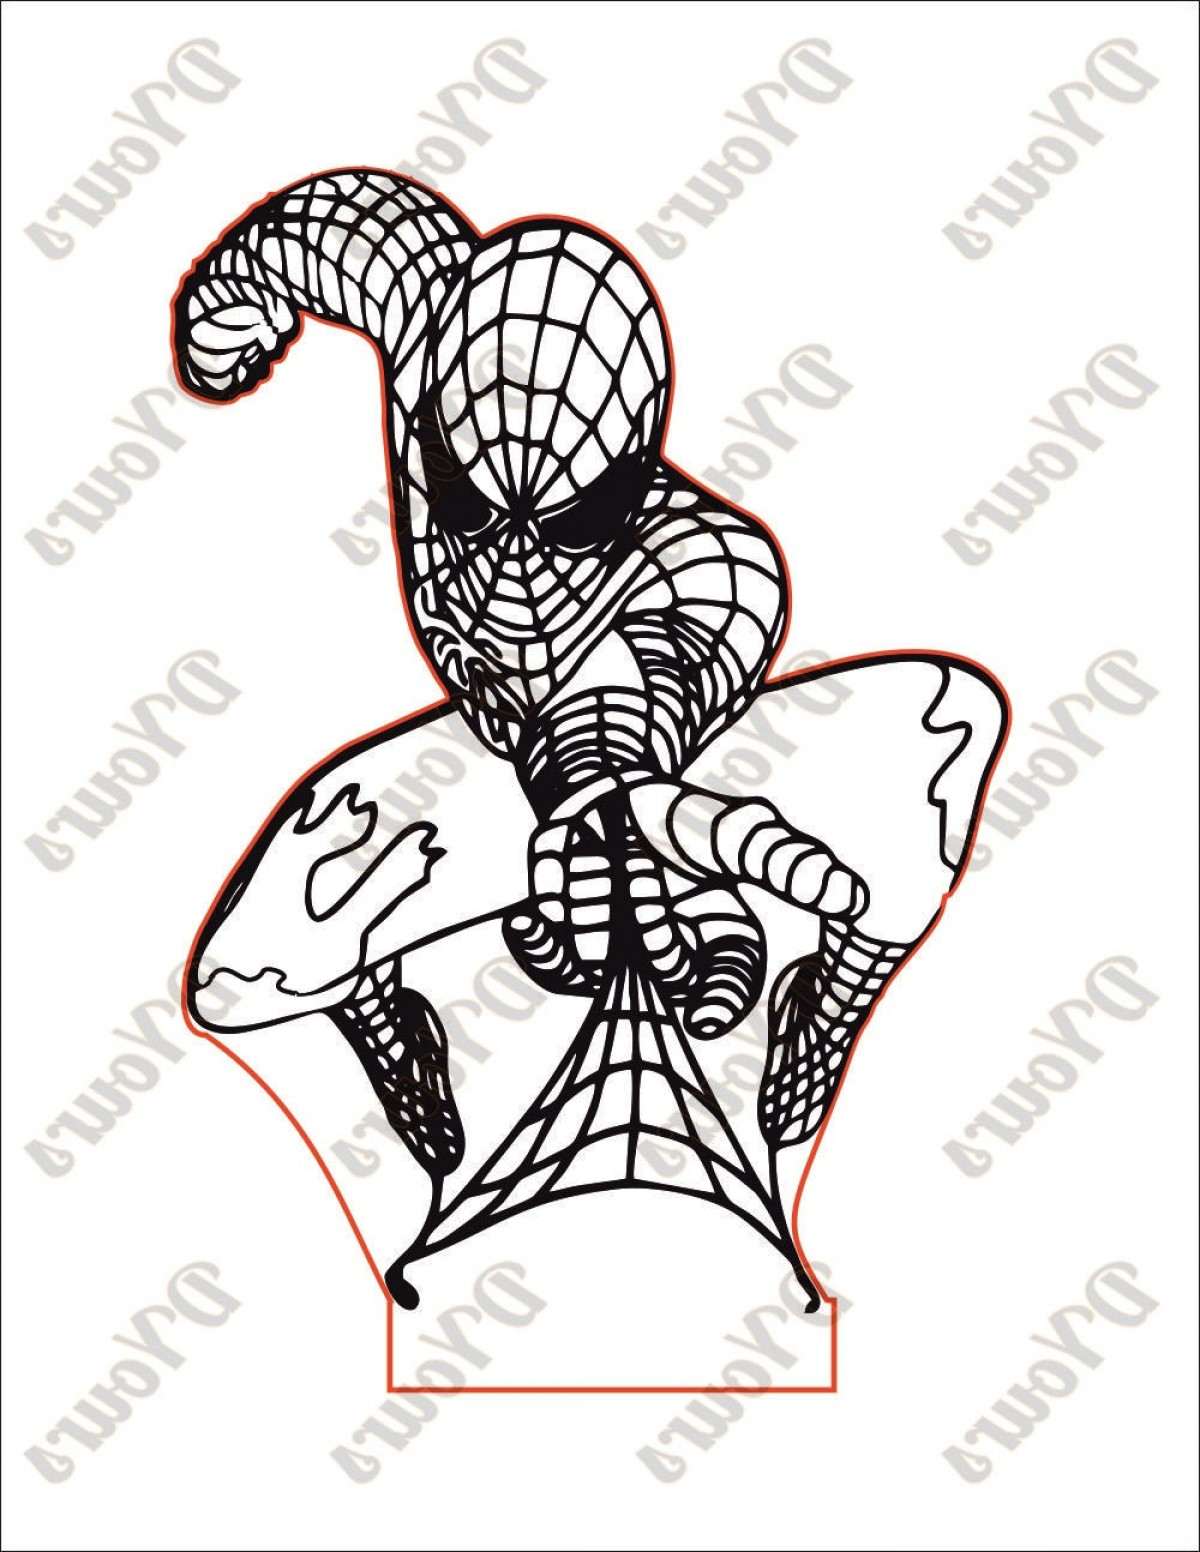 1200x1552 Spiderman Superhero D Lamp Vector Model Shopatcloth